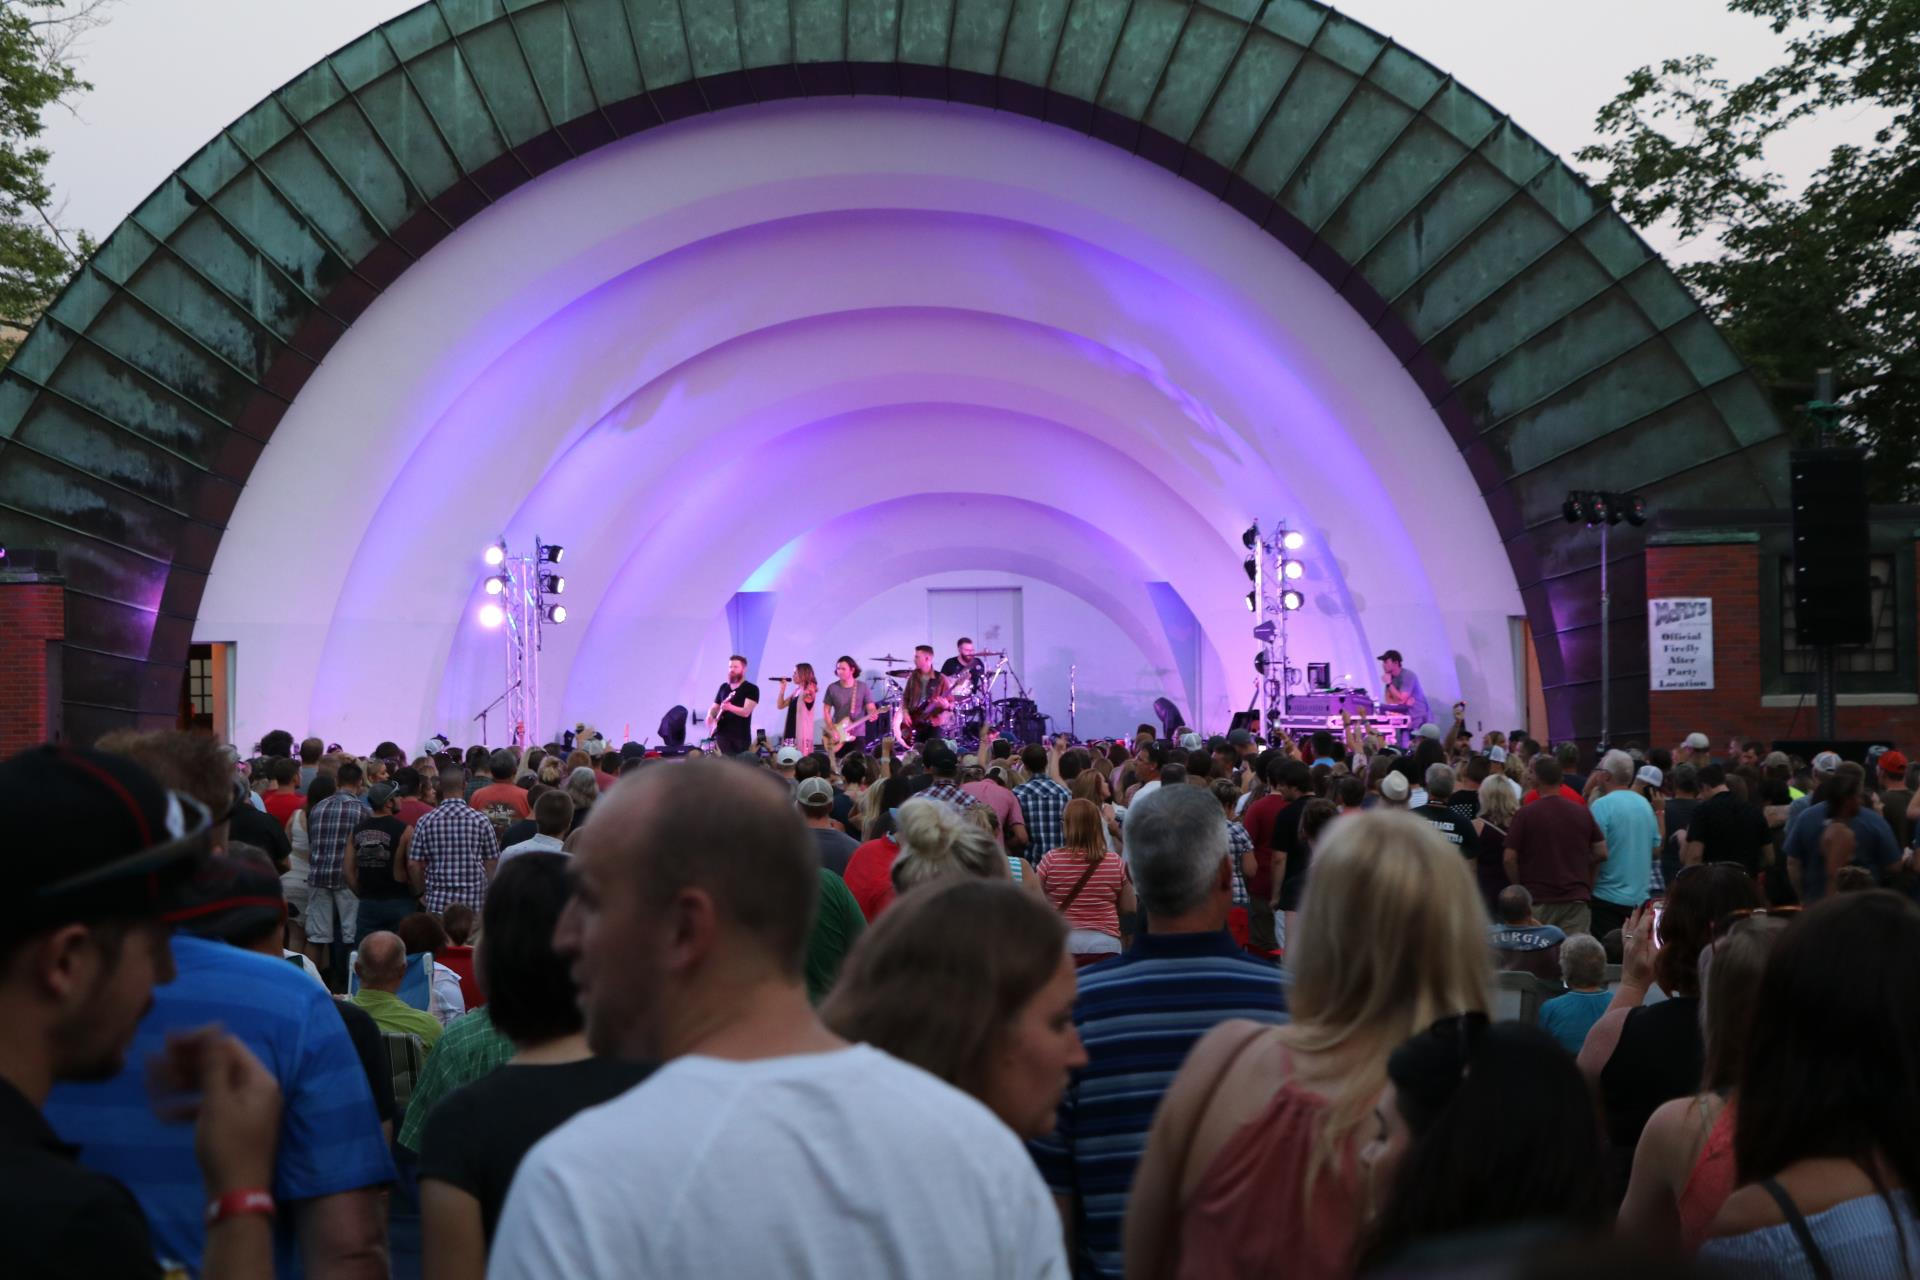 Durham Bandshell during a concet